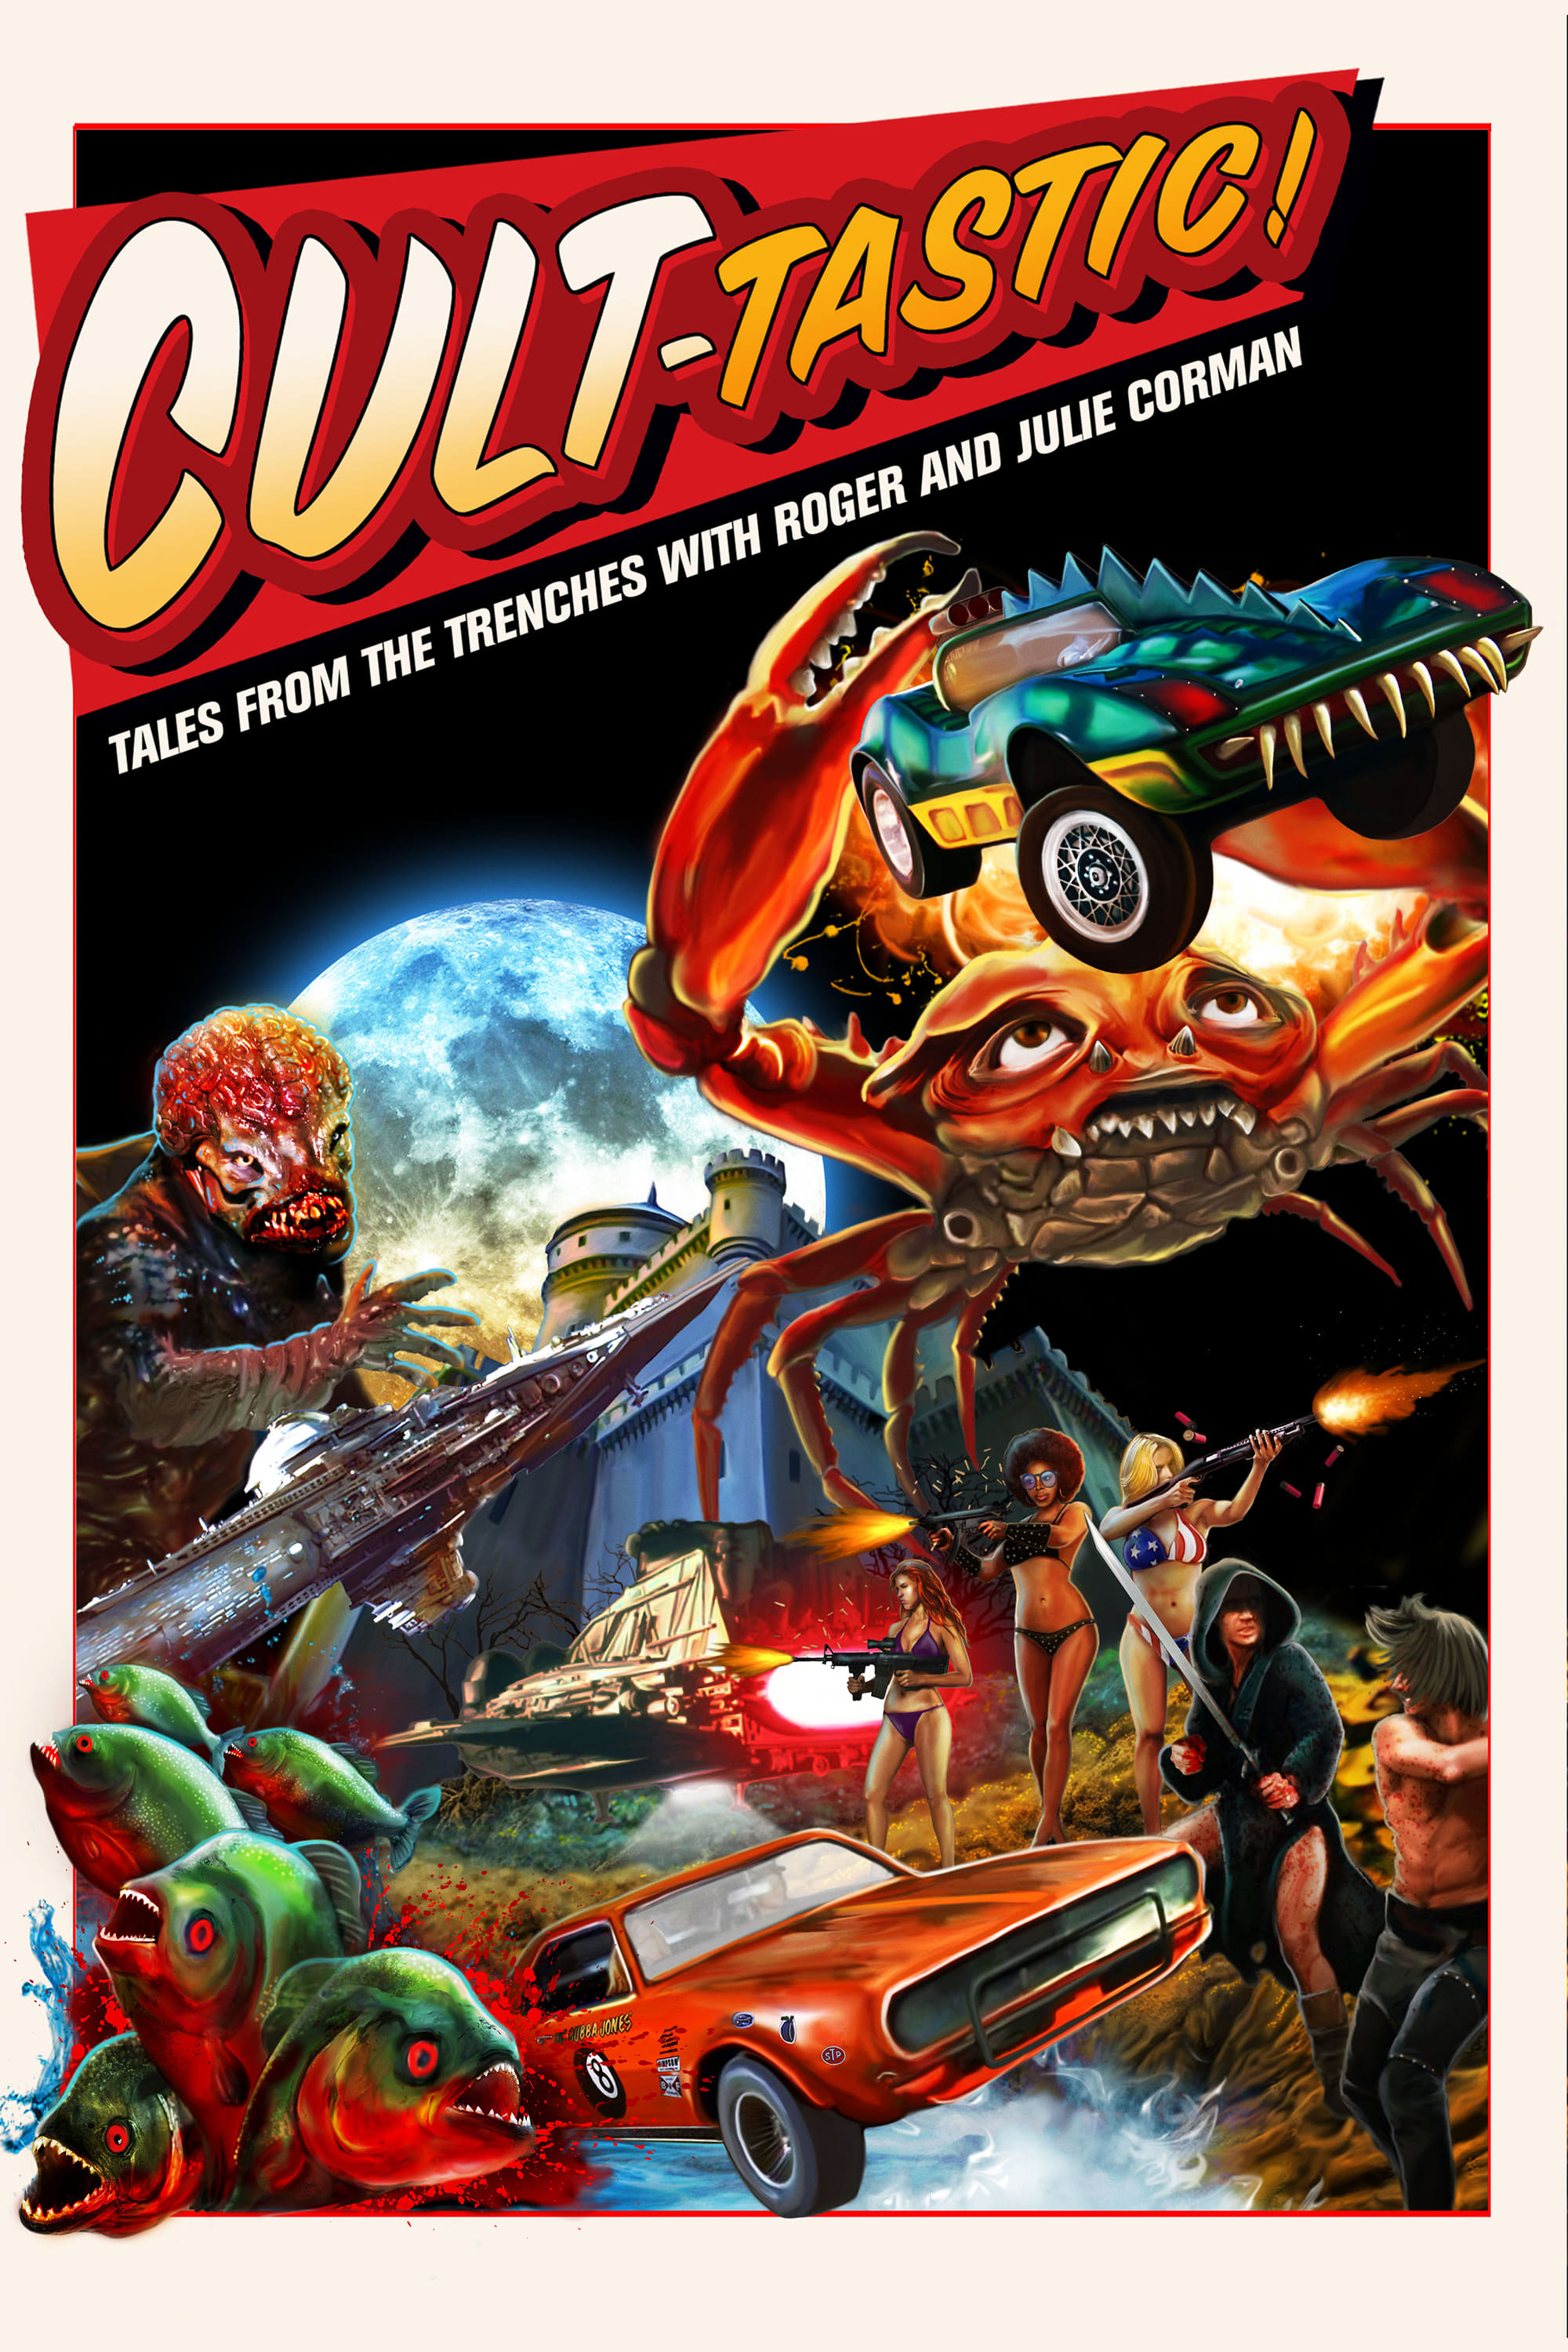 CULT-TASTIC: Tales From The Trenches With Roger And Julie Corman on FREECABLE TV